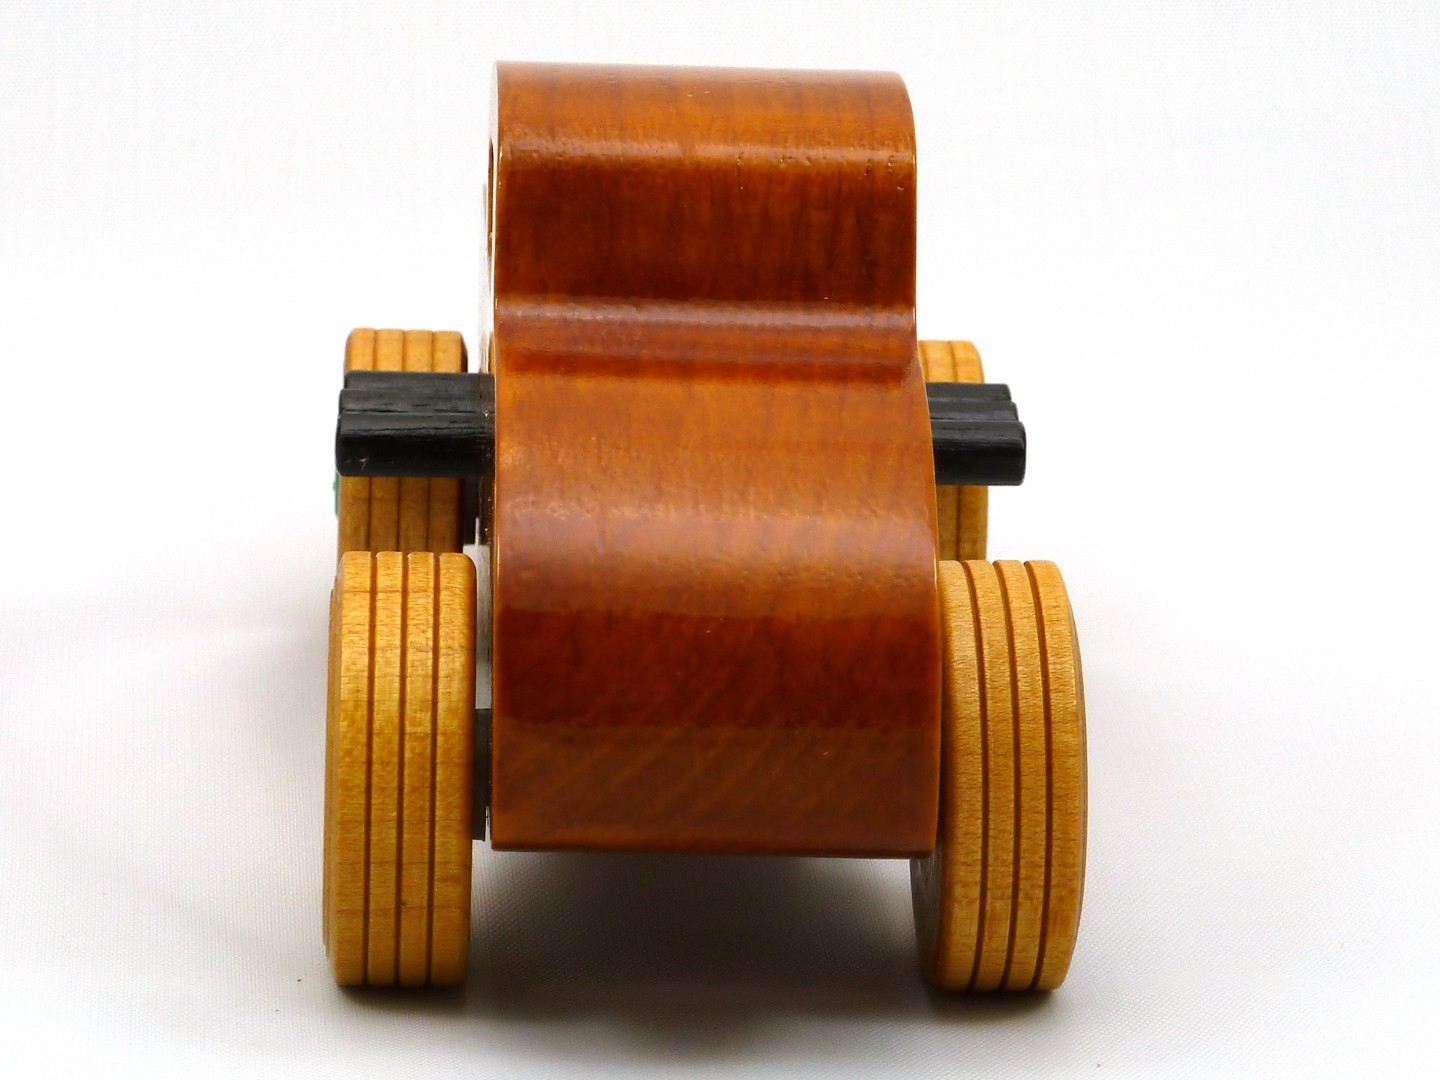 20170902-134306 Wooden Toy Car - Hot Rod Freaky Ford - 32 Deuce Coupe - Pine - Amber Shellac - Metallic Green.jpg